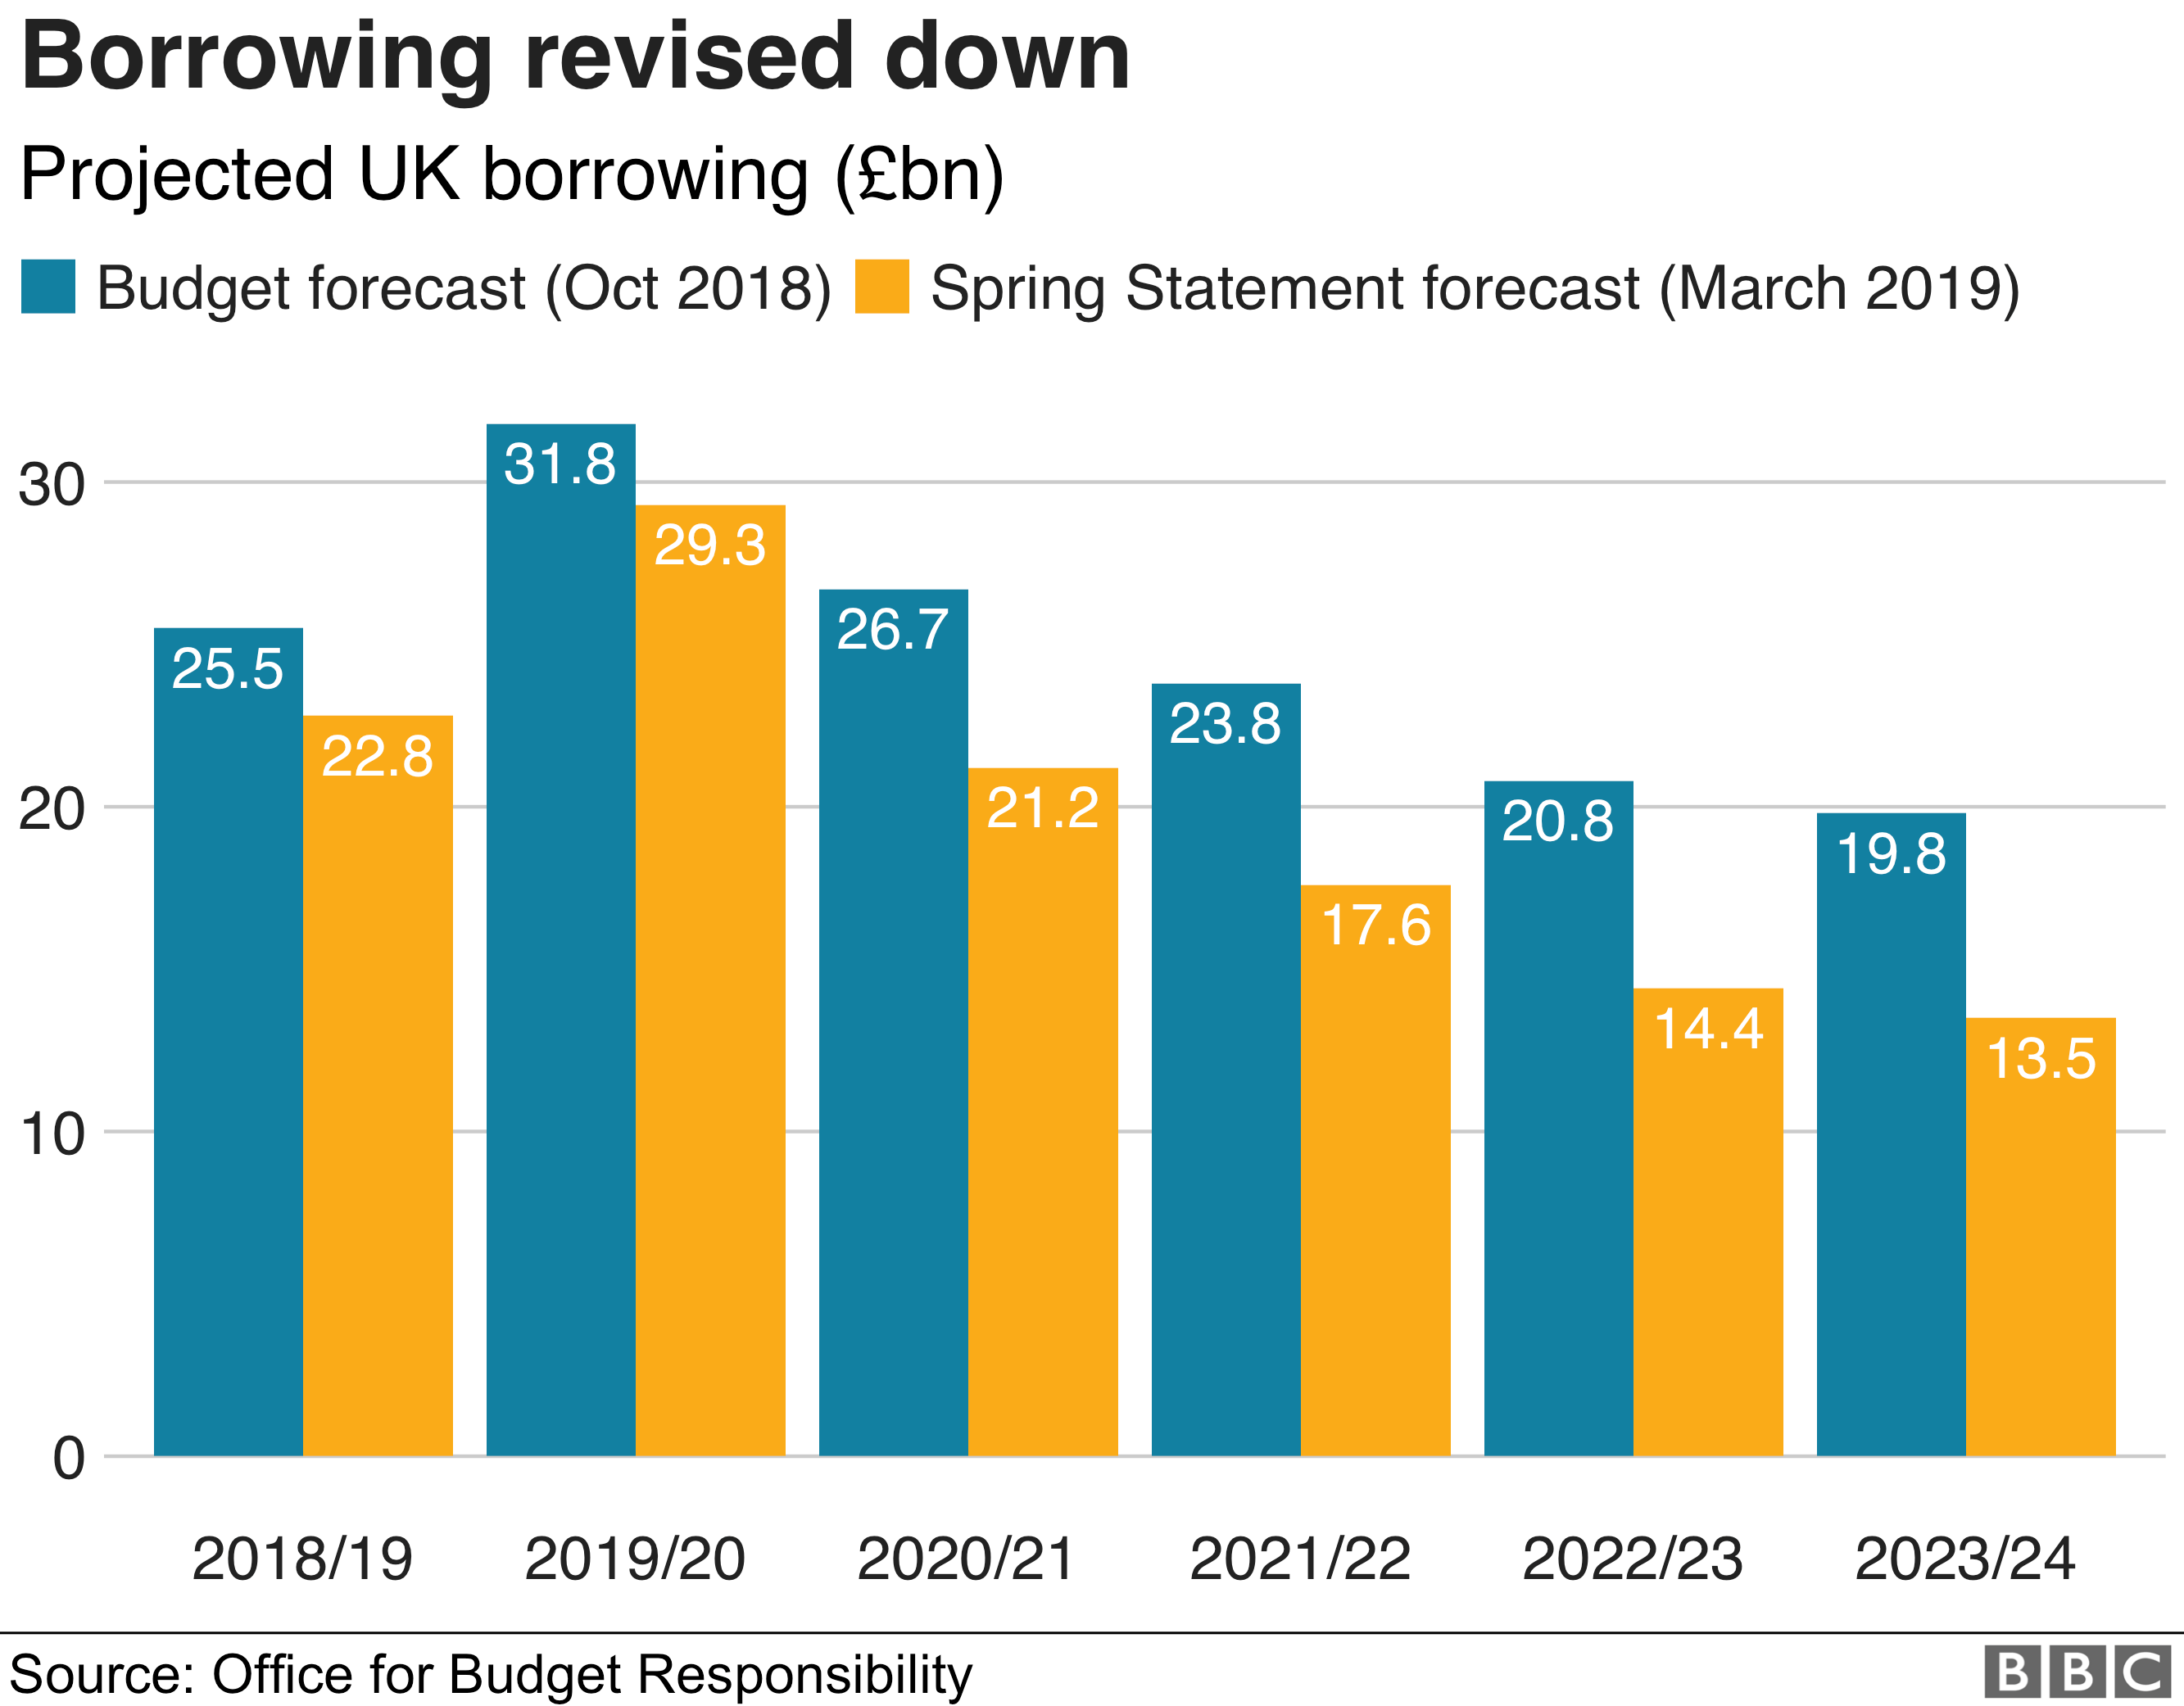 Chart showing UK borrowing projections